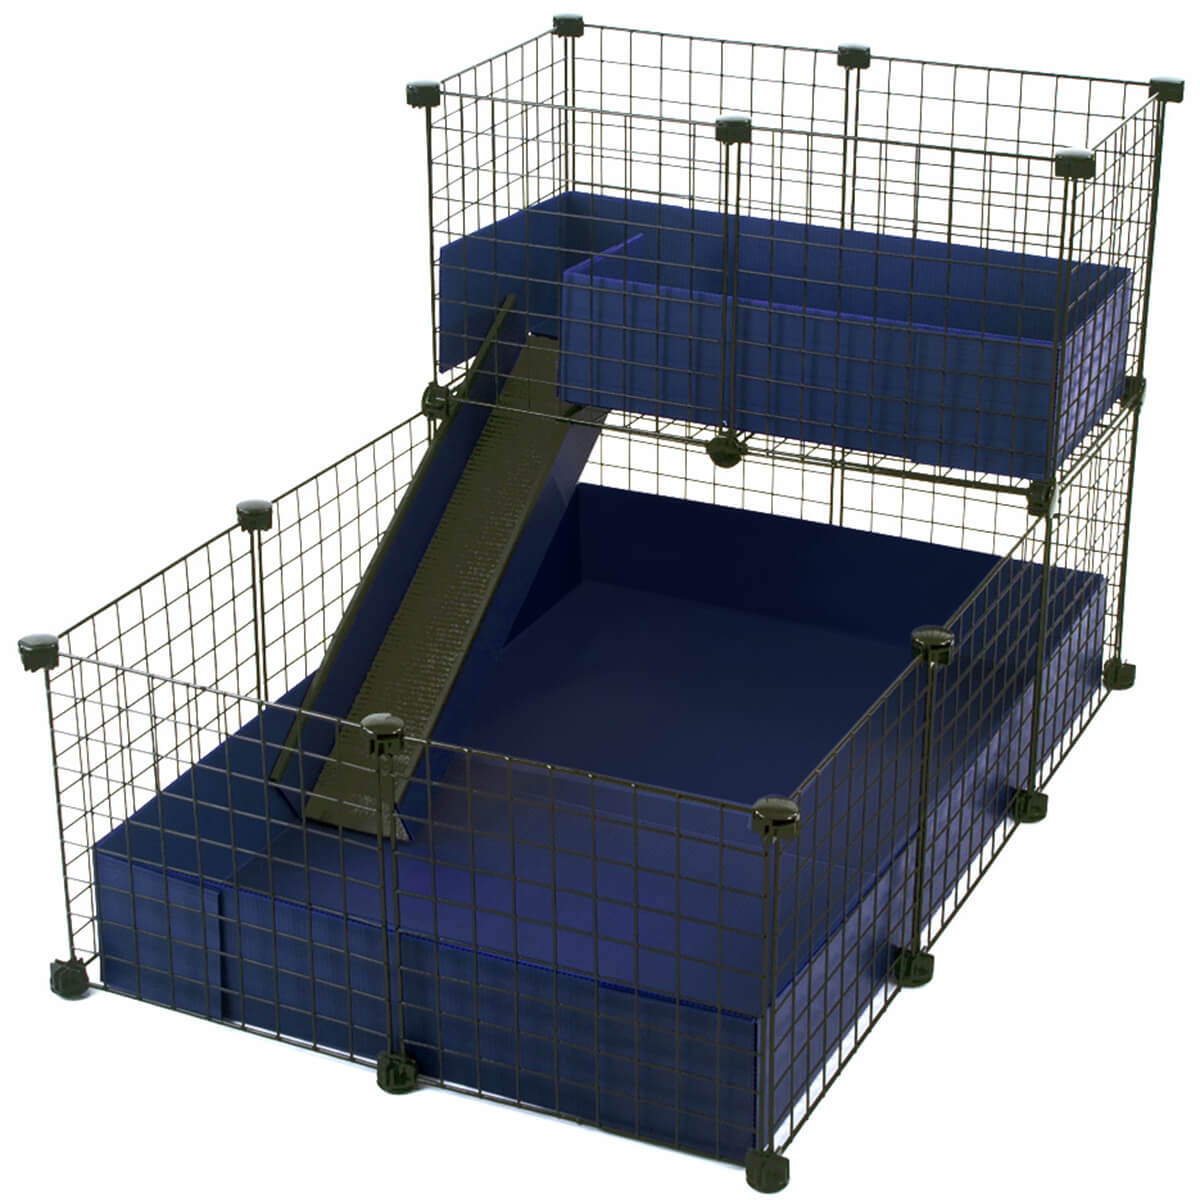 Small 2x3 grids loft deluxe cages c c cages for for Where to get c c cages